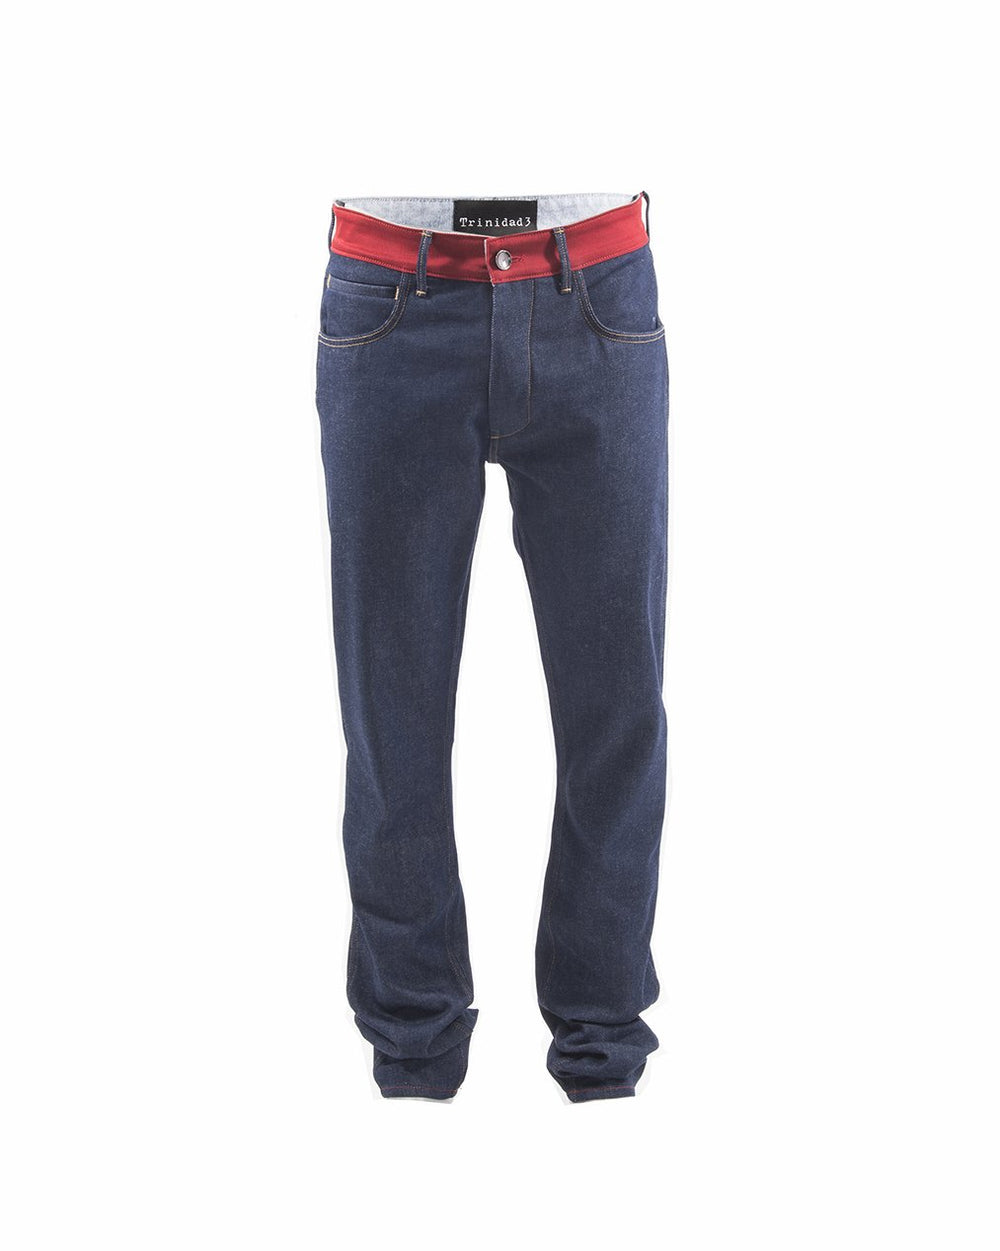 JOHNSON RAW DENIM JEAN